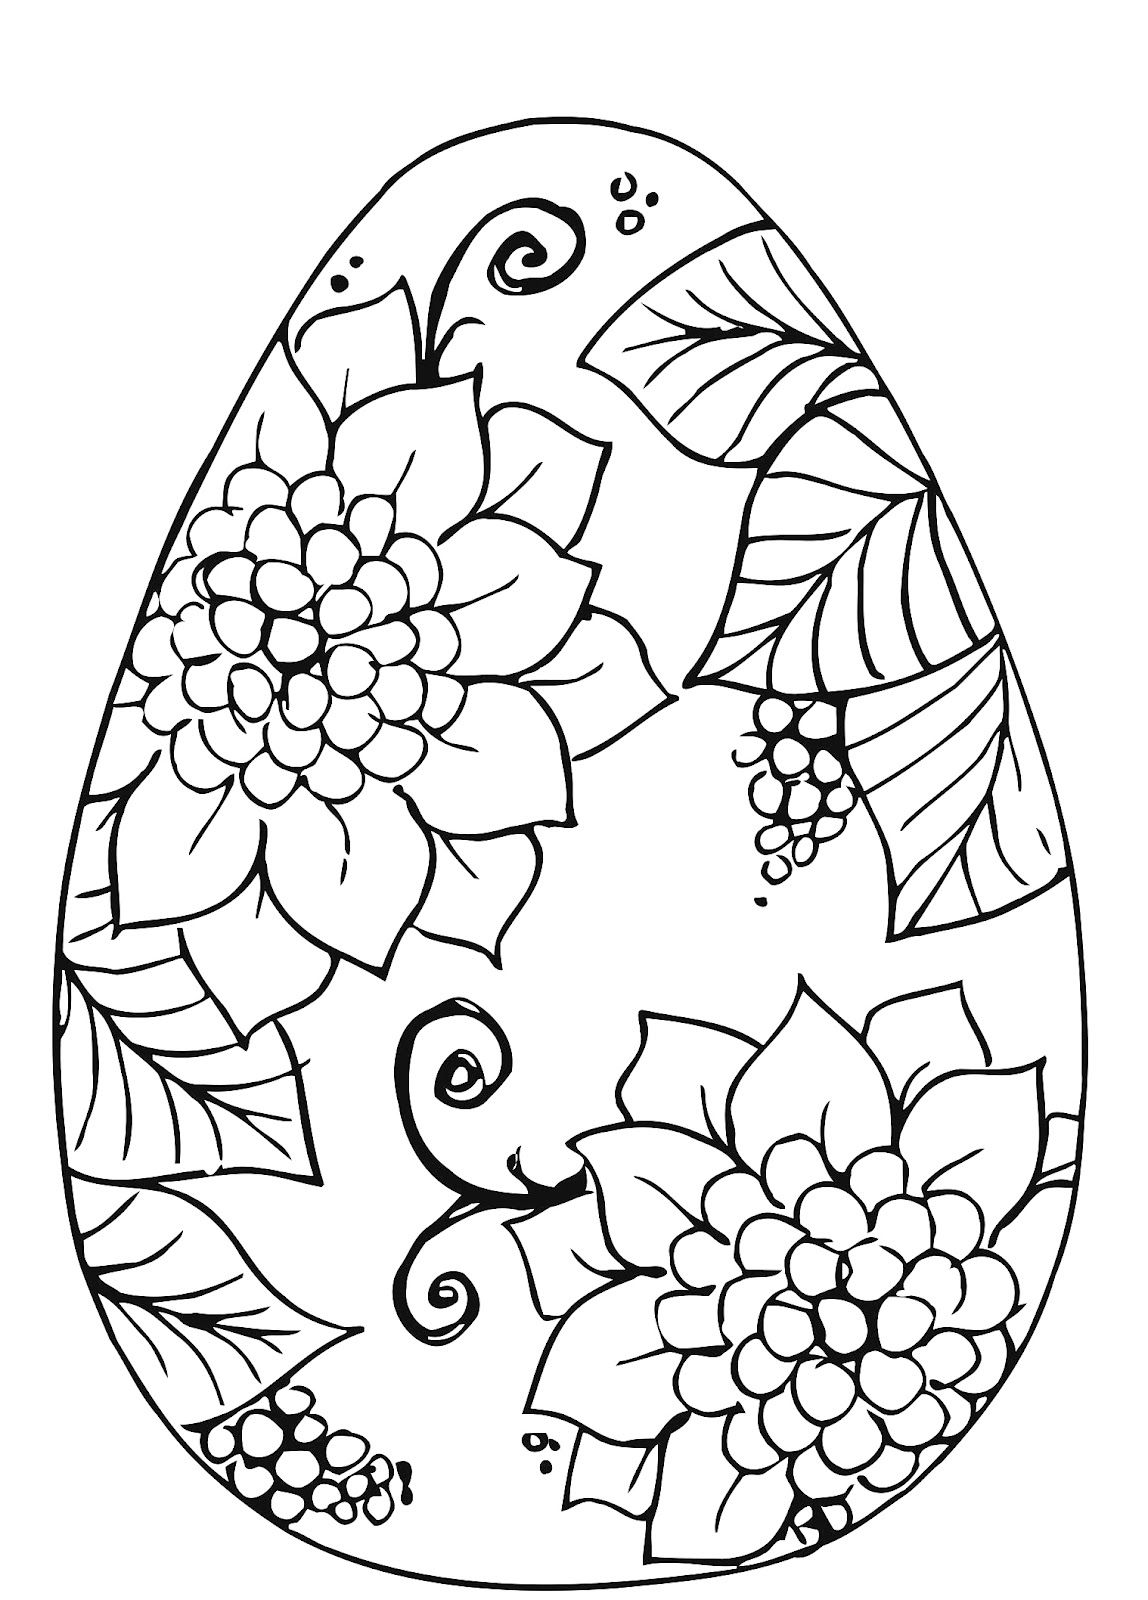 B D Designs Free Coloring Page Easter Kleurplaat Pasen Coloring Easter Eggs Easter Colouring Easter Coloring Pages